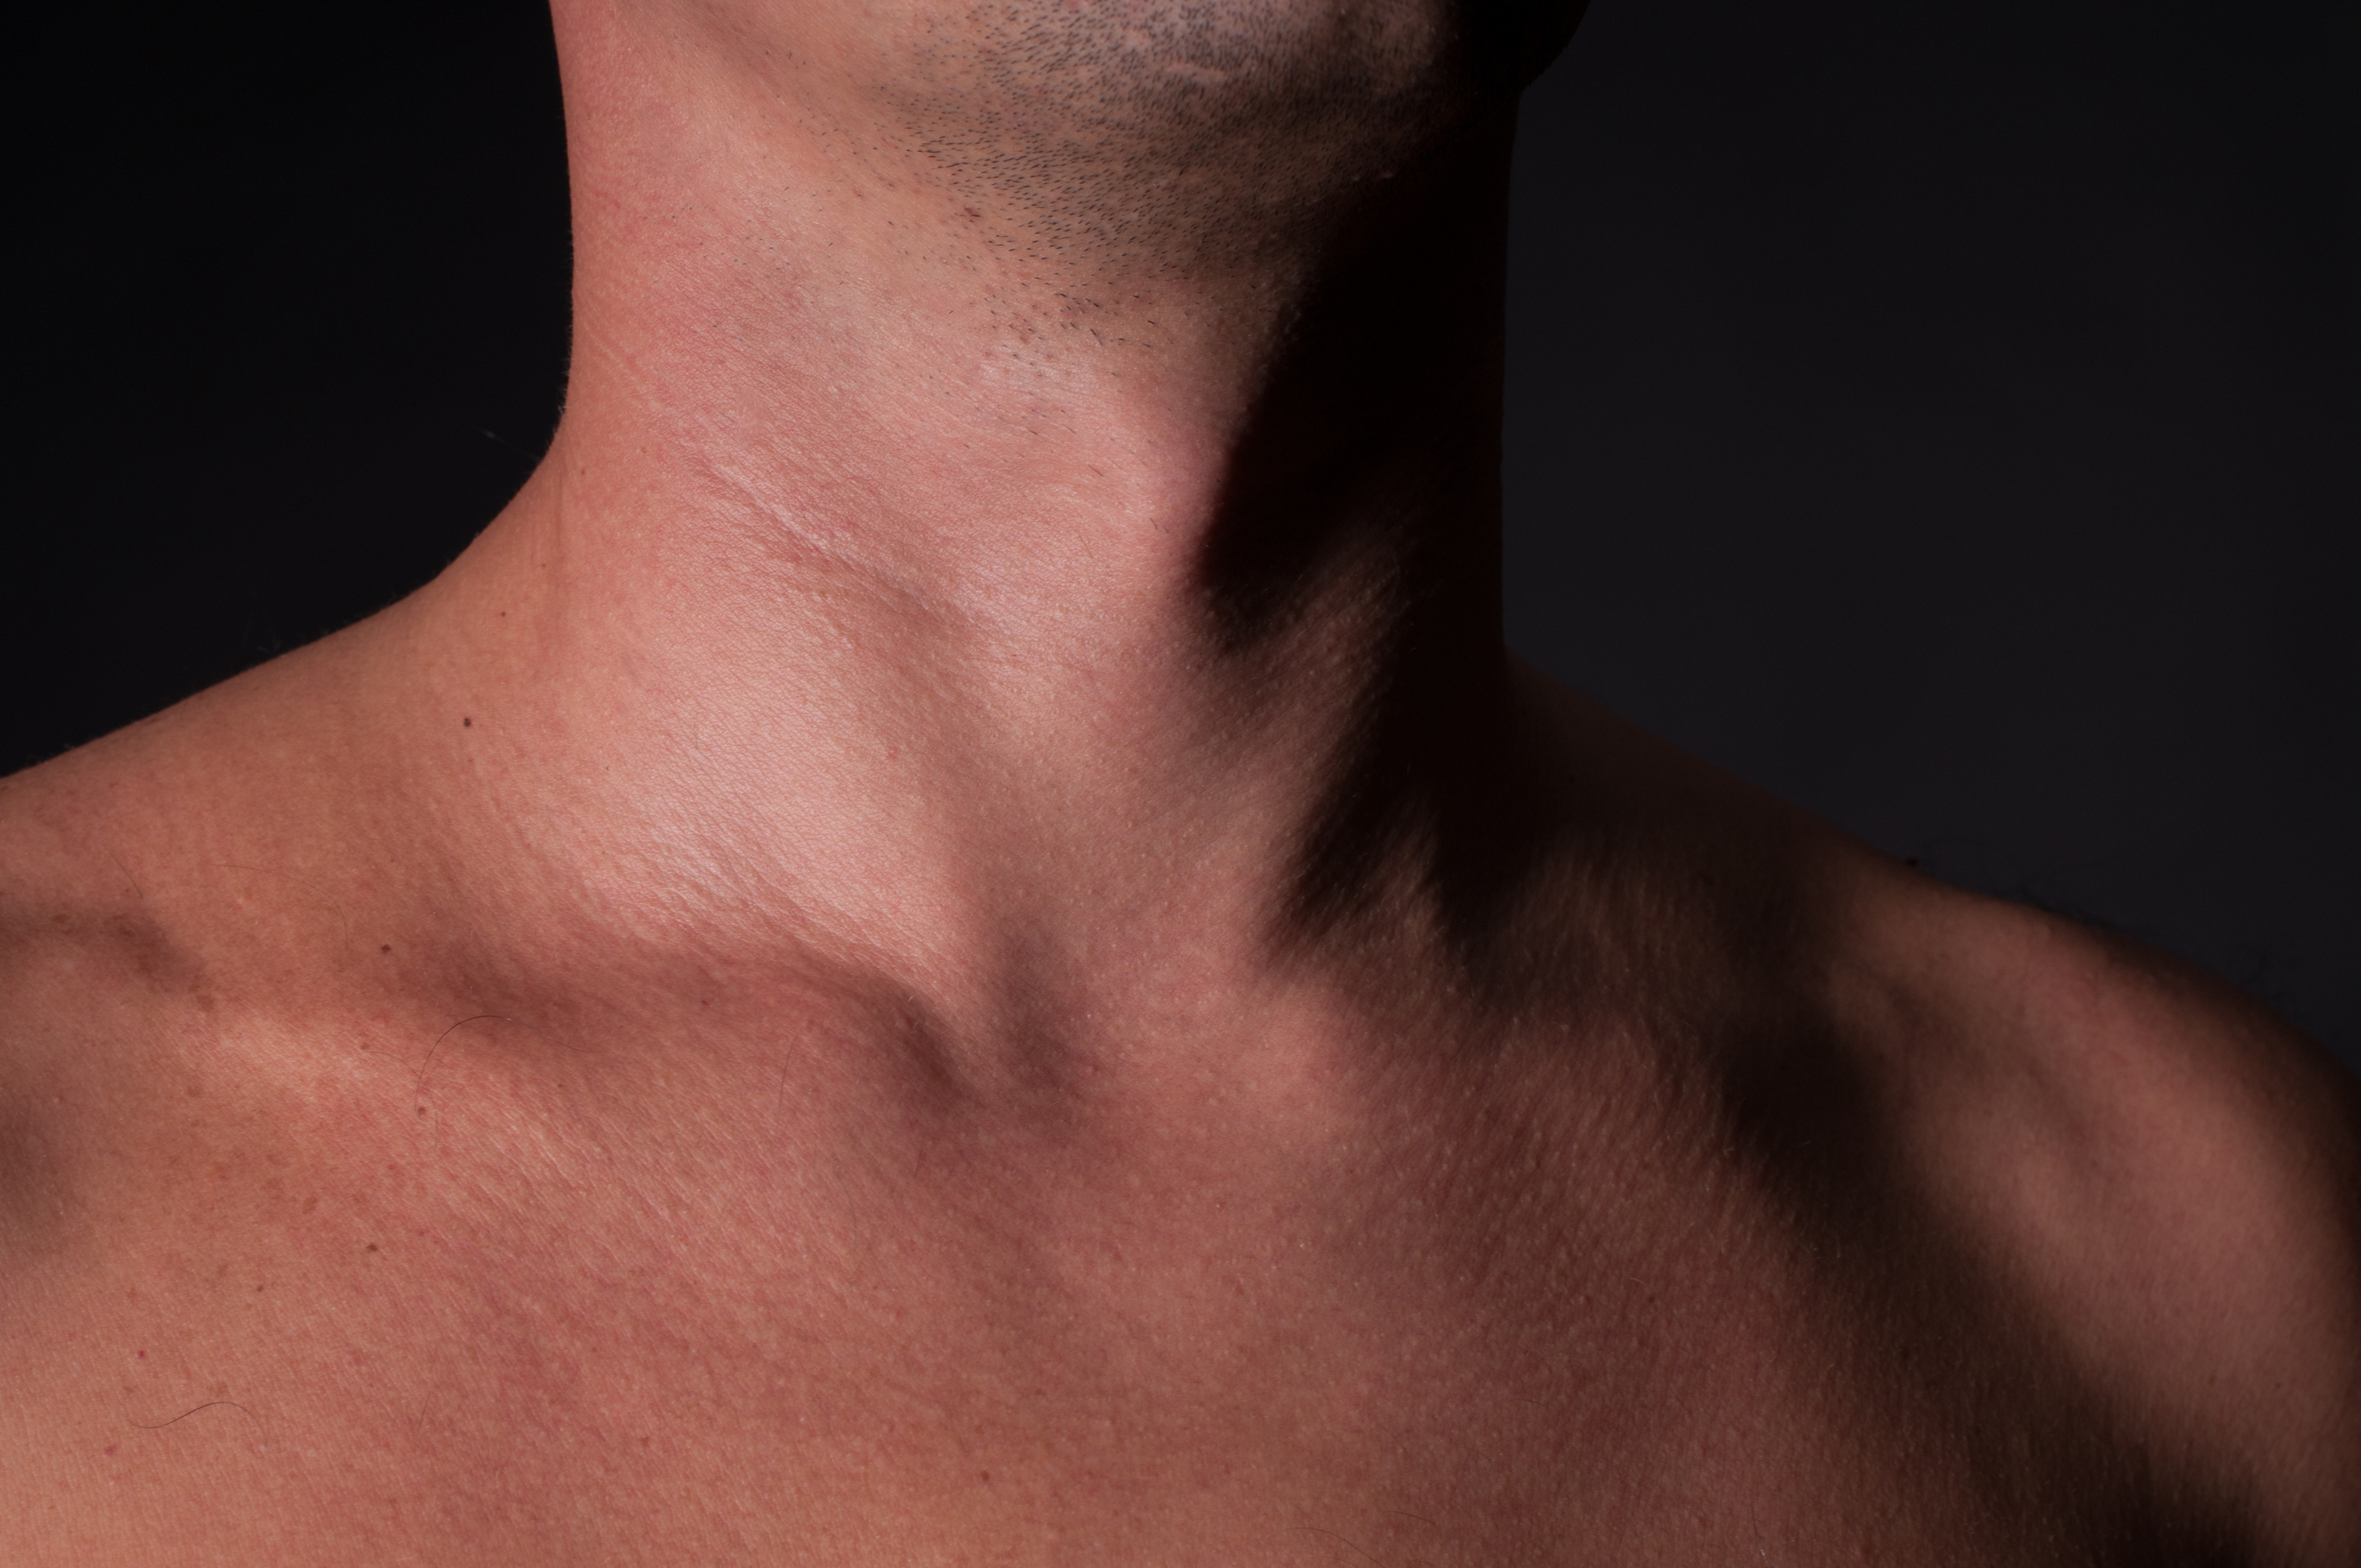 Can Cancer Cause Asymmetrical or Uneven Adam's Apple?